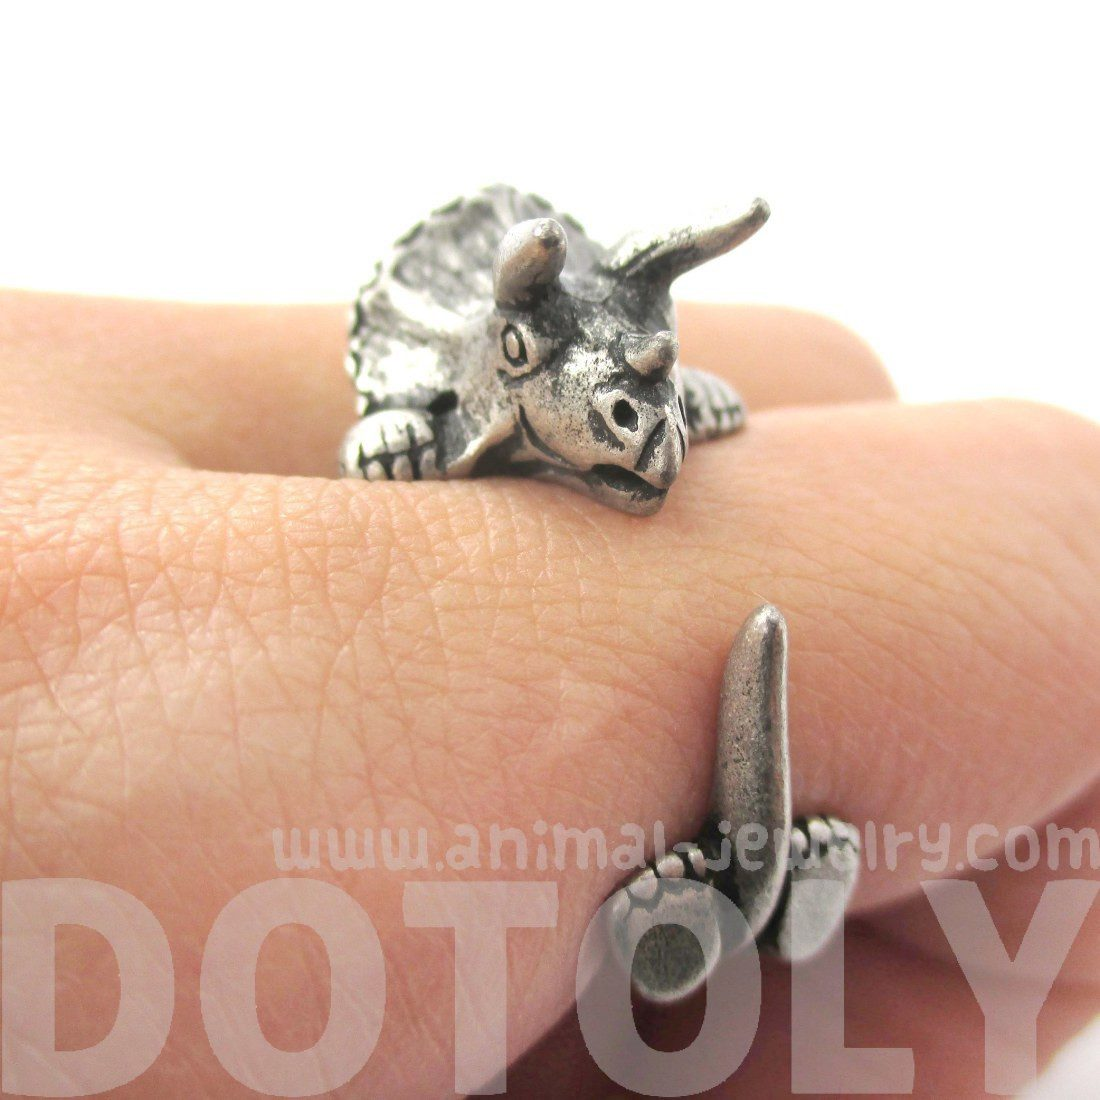 Triceratops Dinosaur Prehistoric Animal Wrap Around Hug Ring in Silver